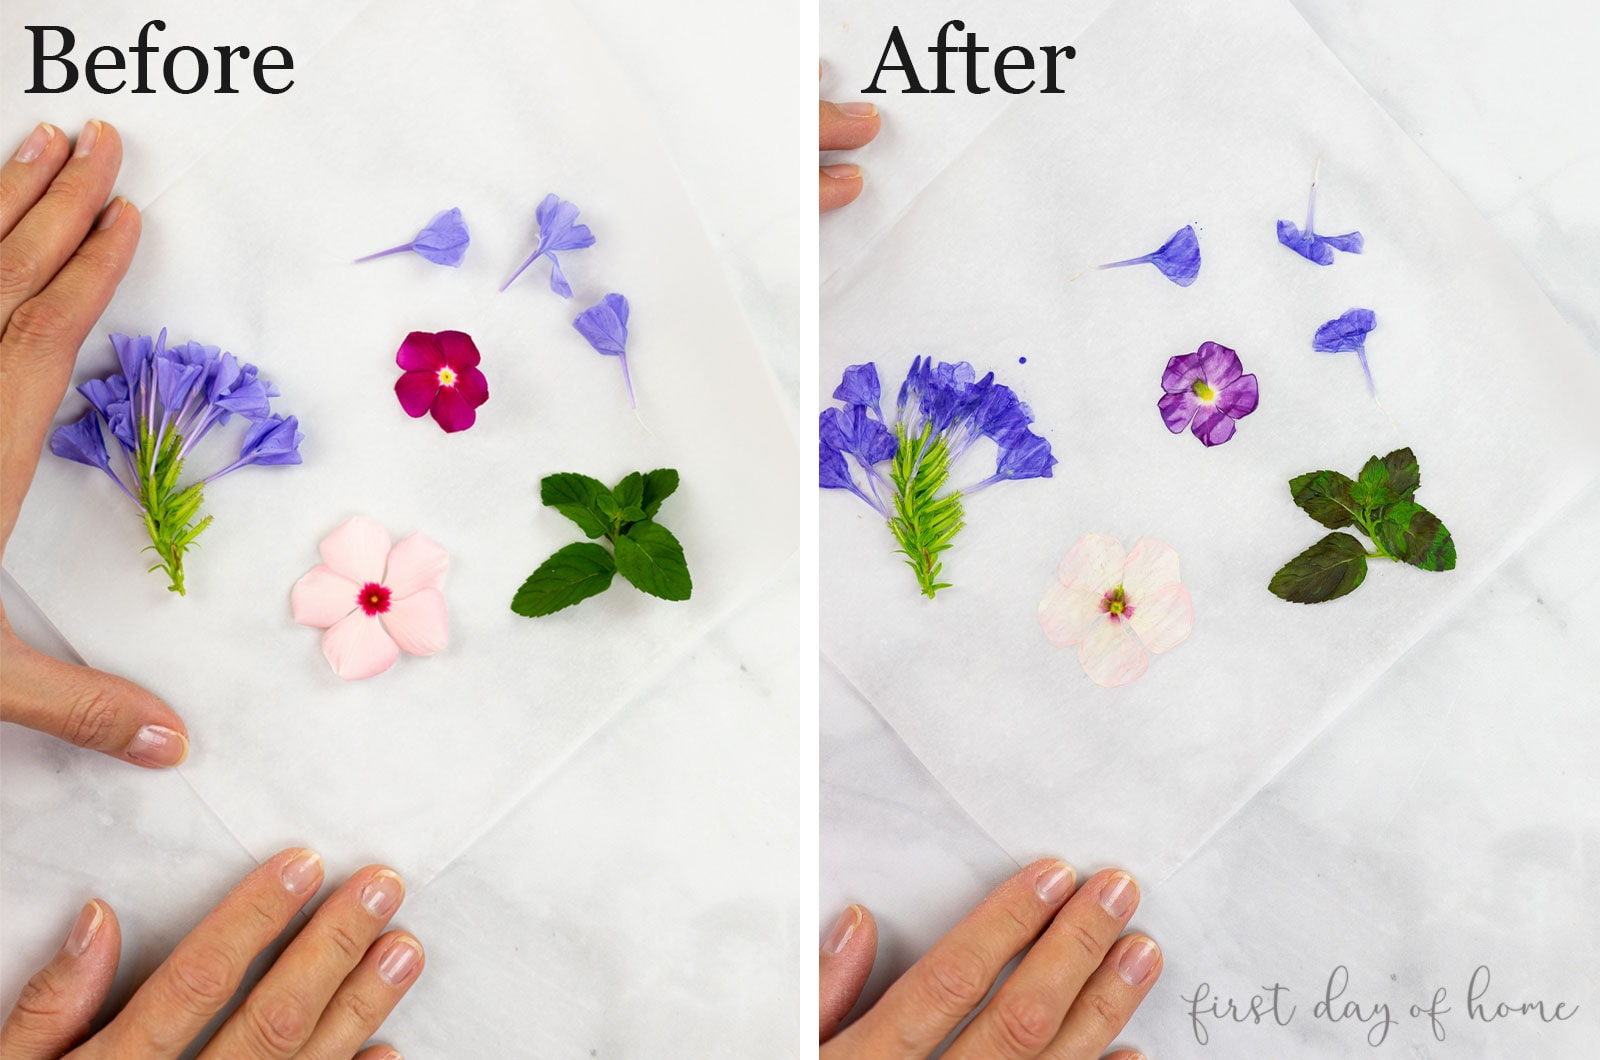 Drying flowers with an iron